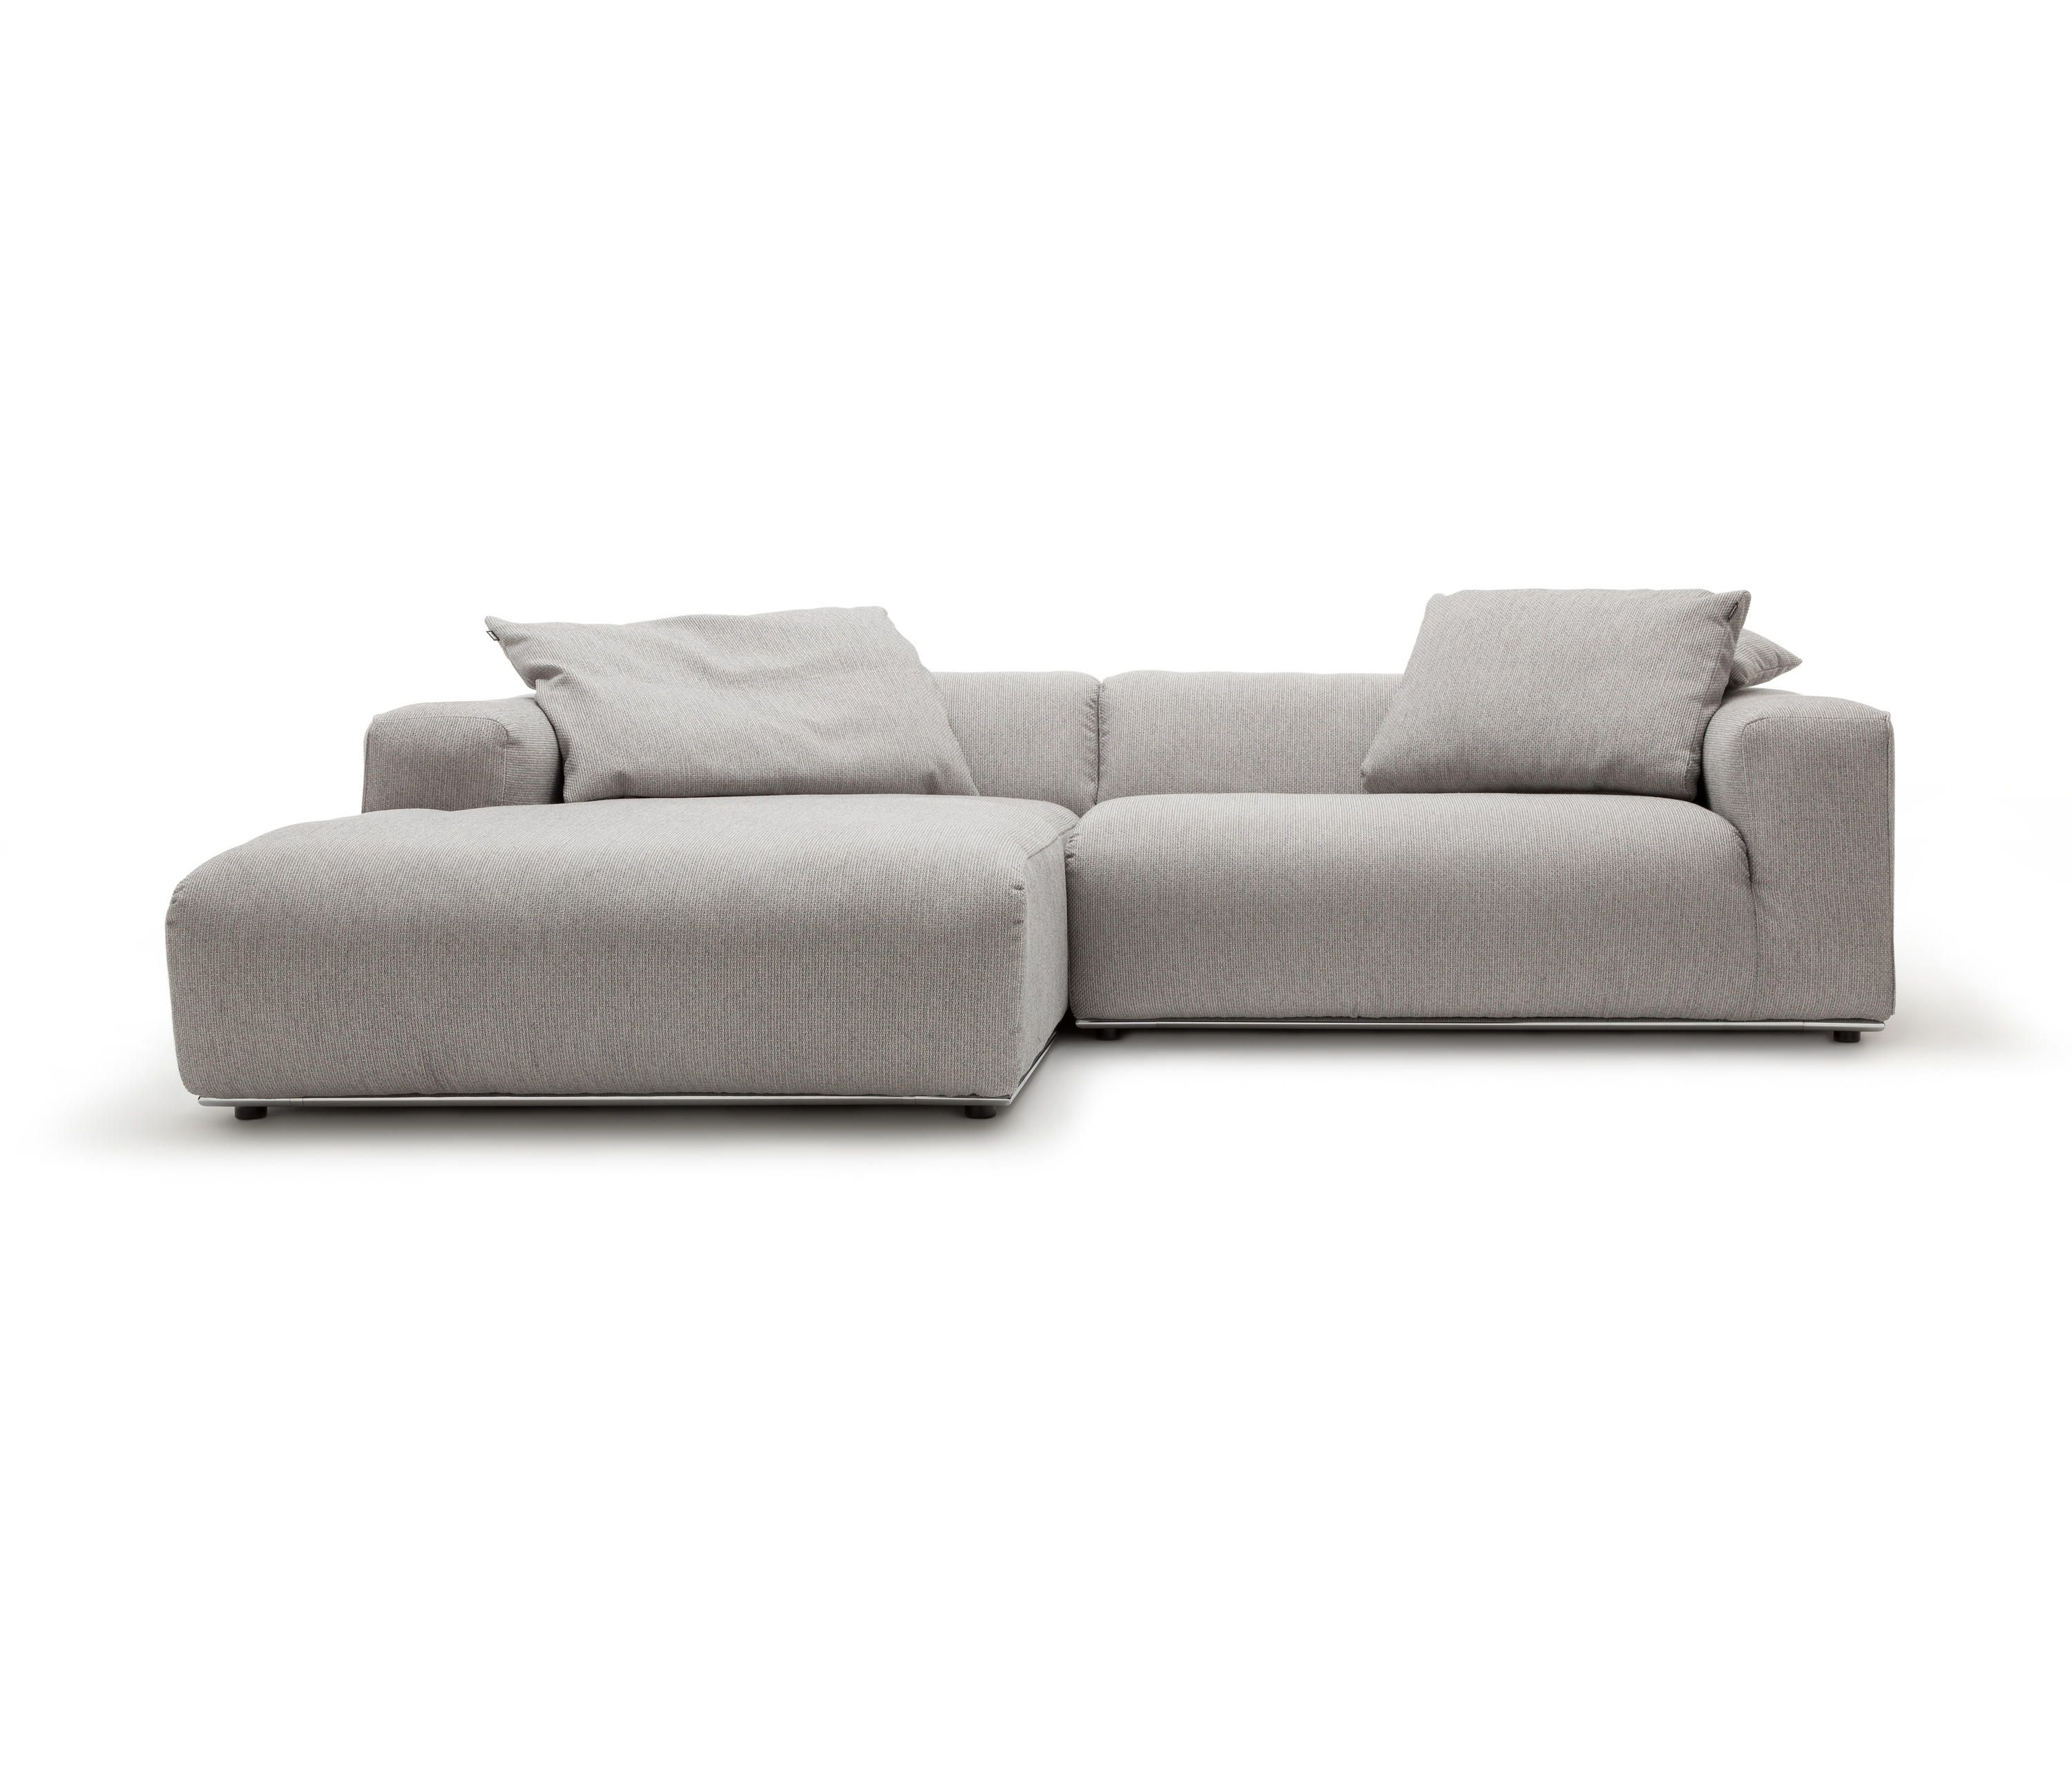 Freistil 187 Designer Sofas From Freistil All Information